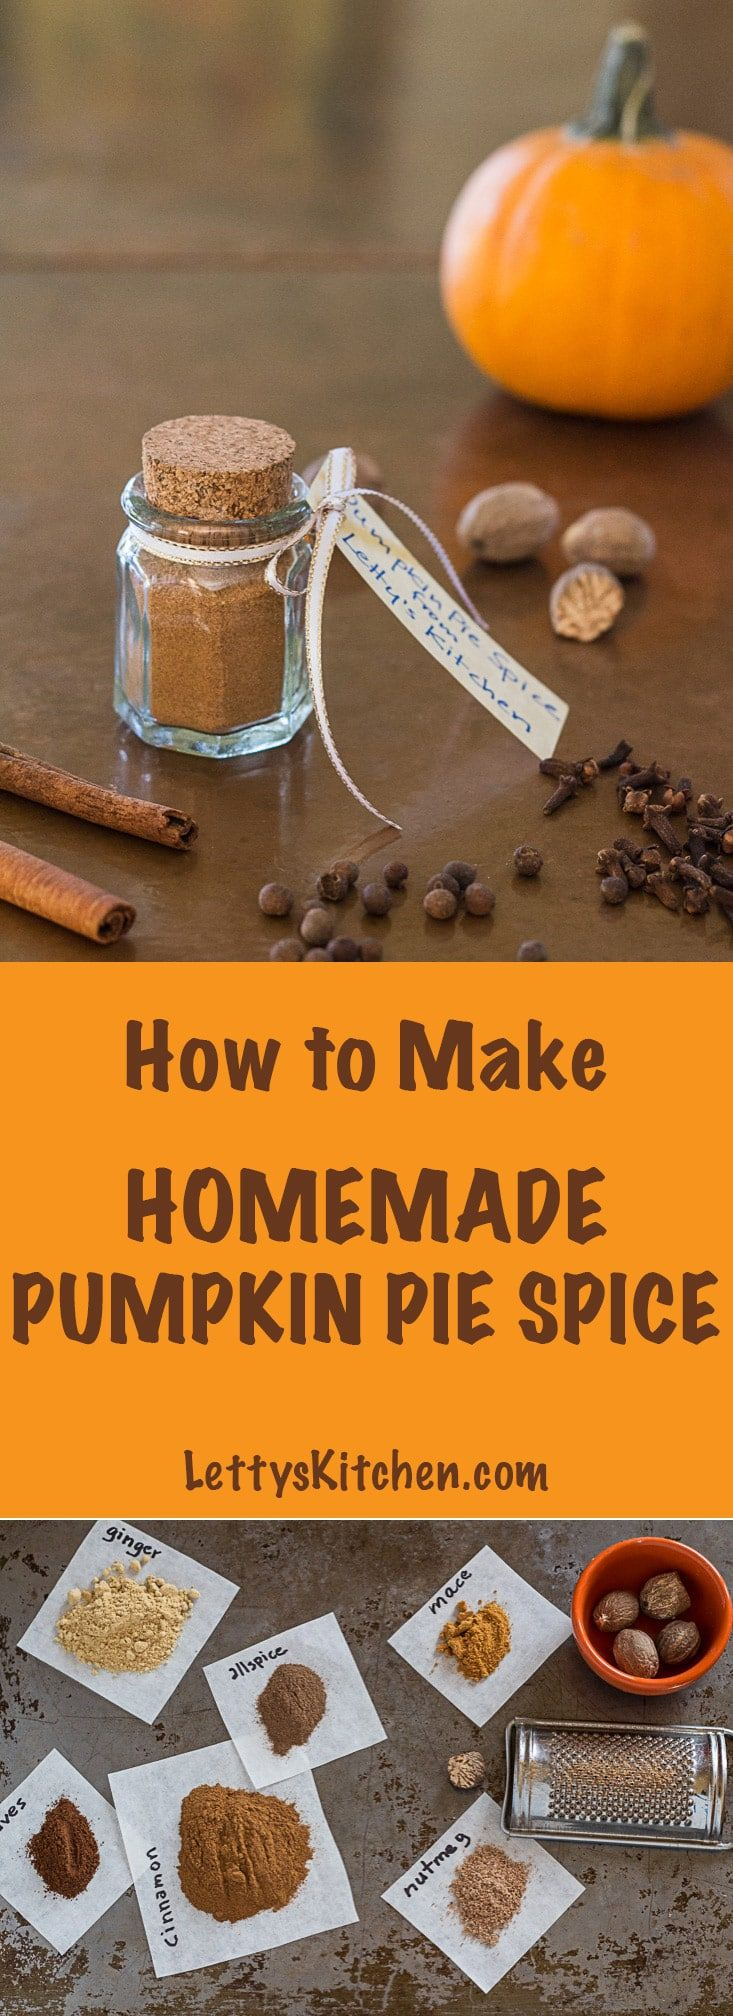 Homemade Pumpkin Pie Spice Mix Recipe Homemade pumpkin